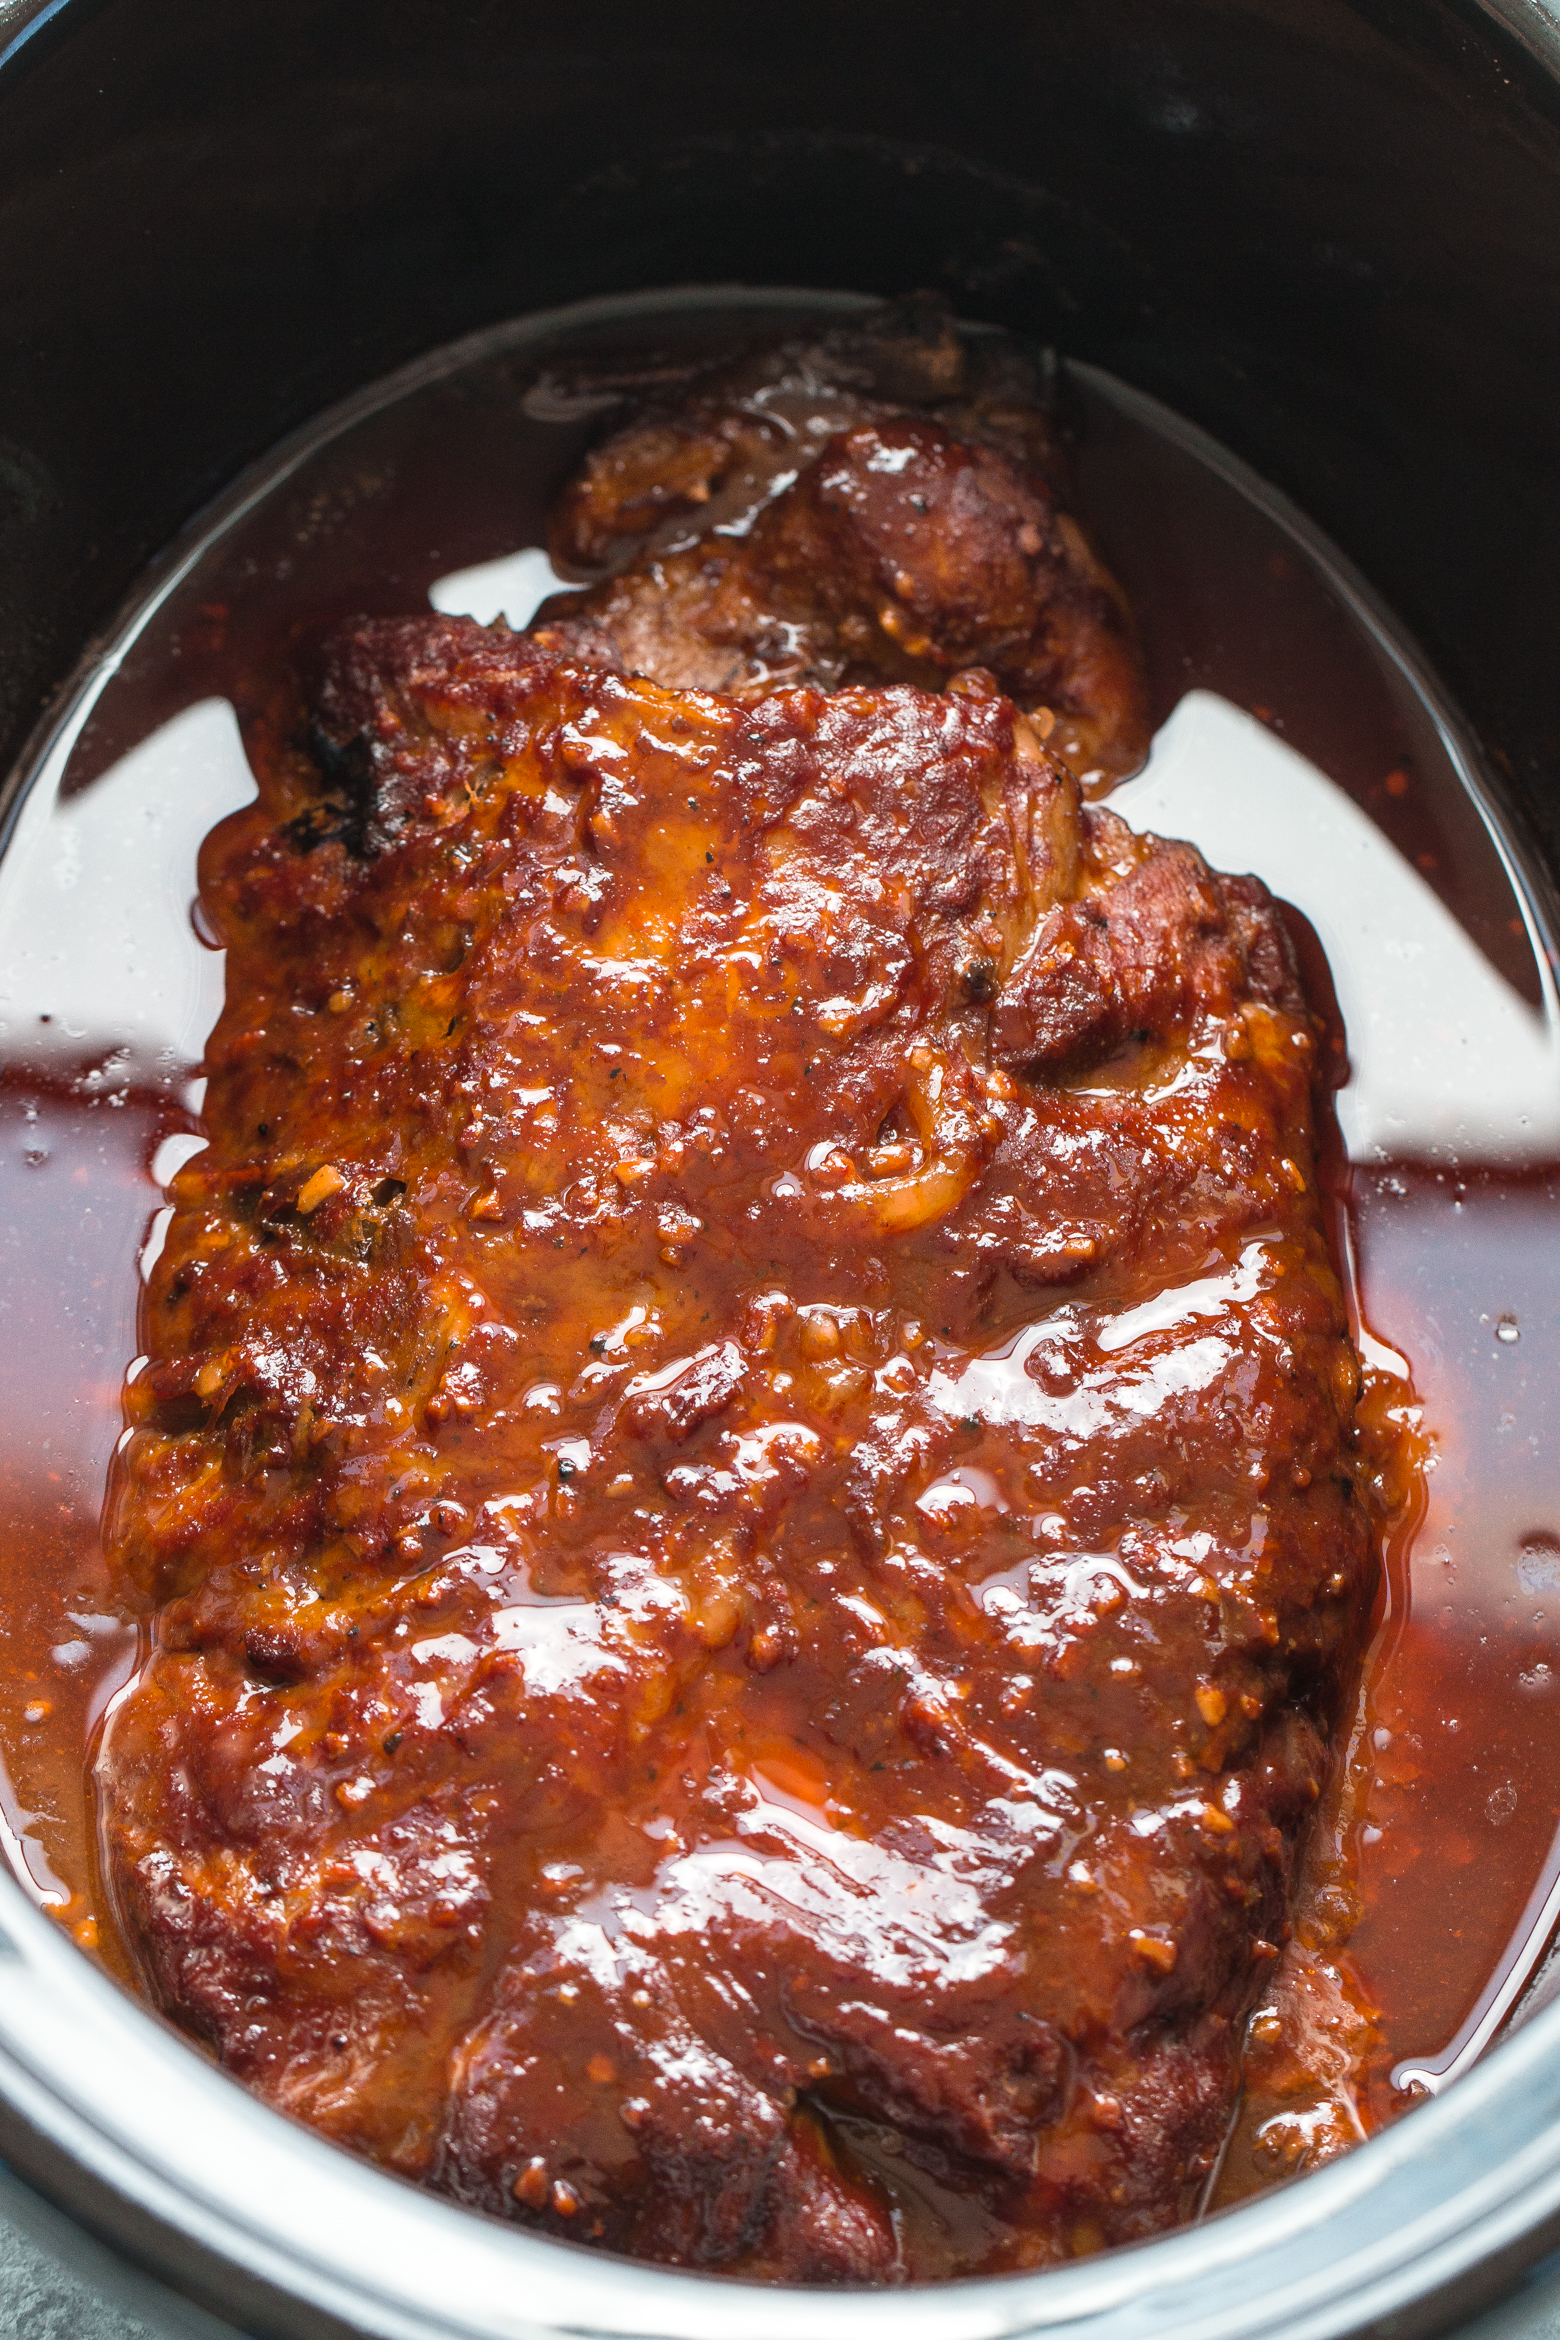 ribs in slow cooker cooked in bbq sauce for the perfect fall off the bone ribs by The Food Cafe.